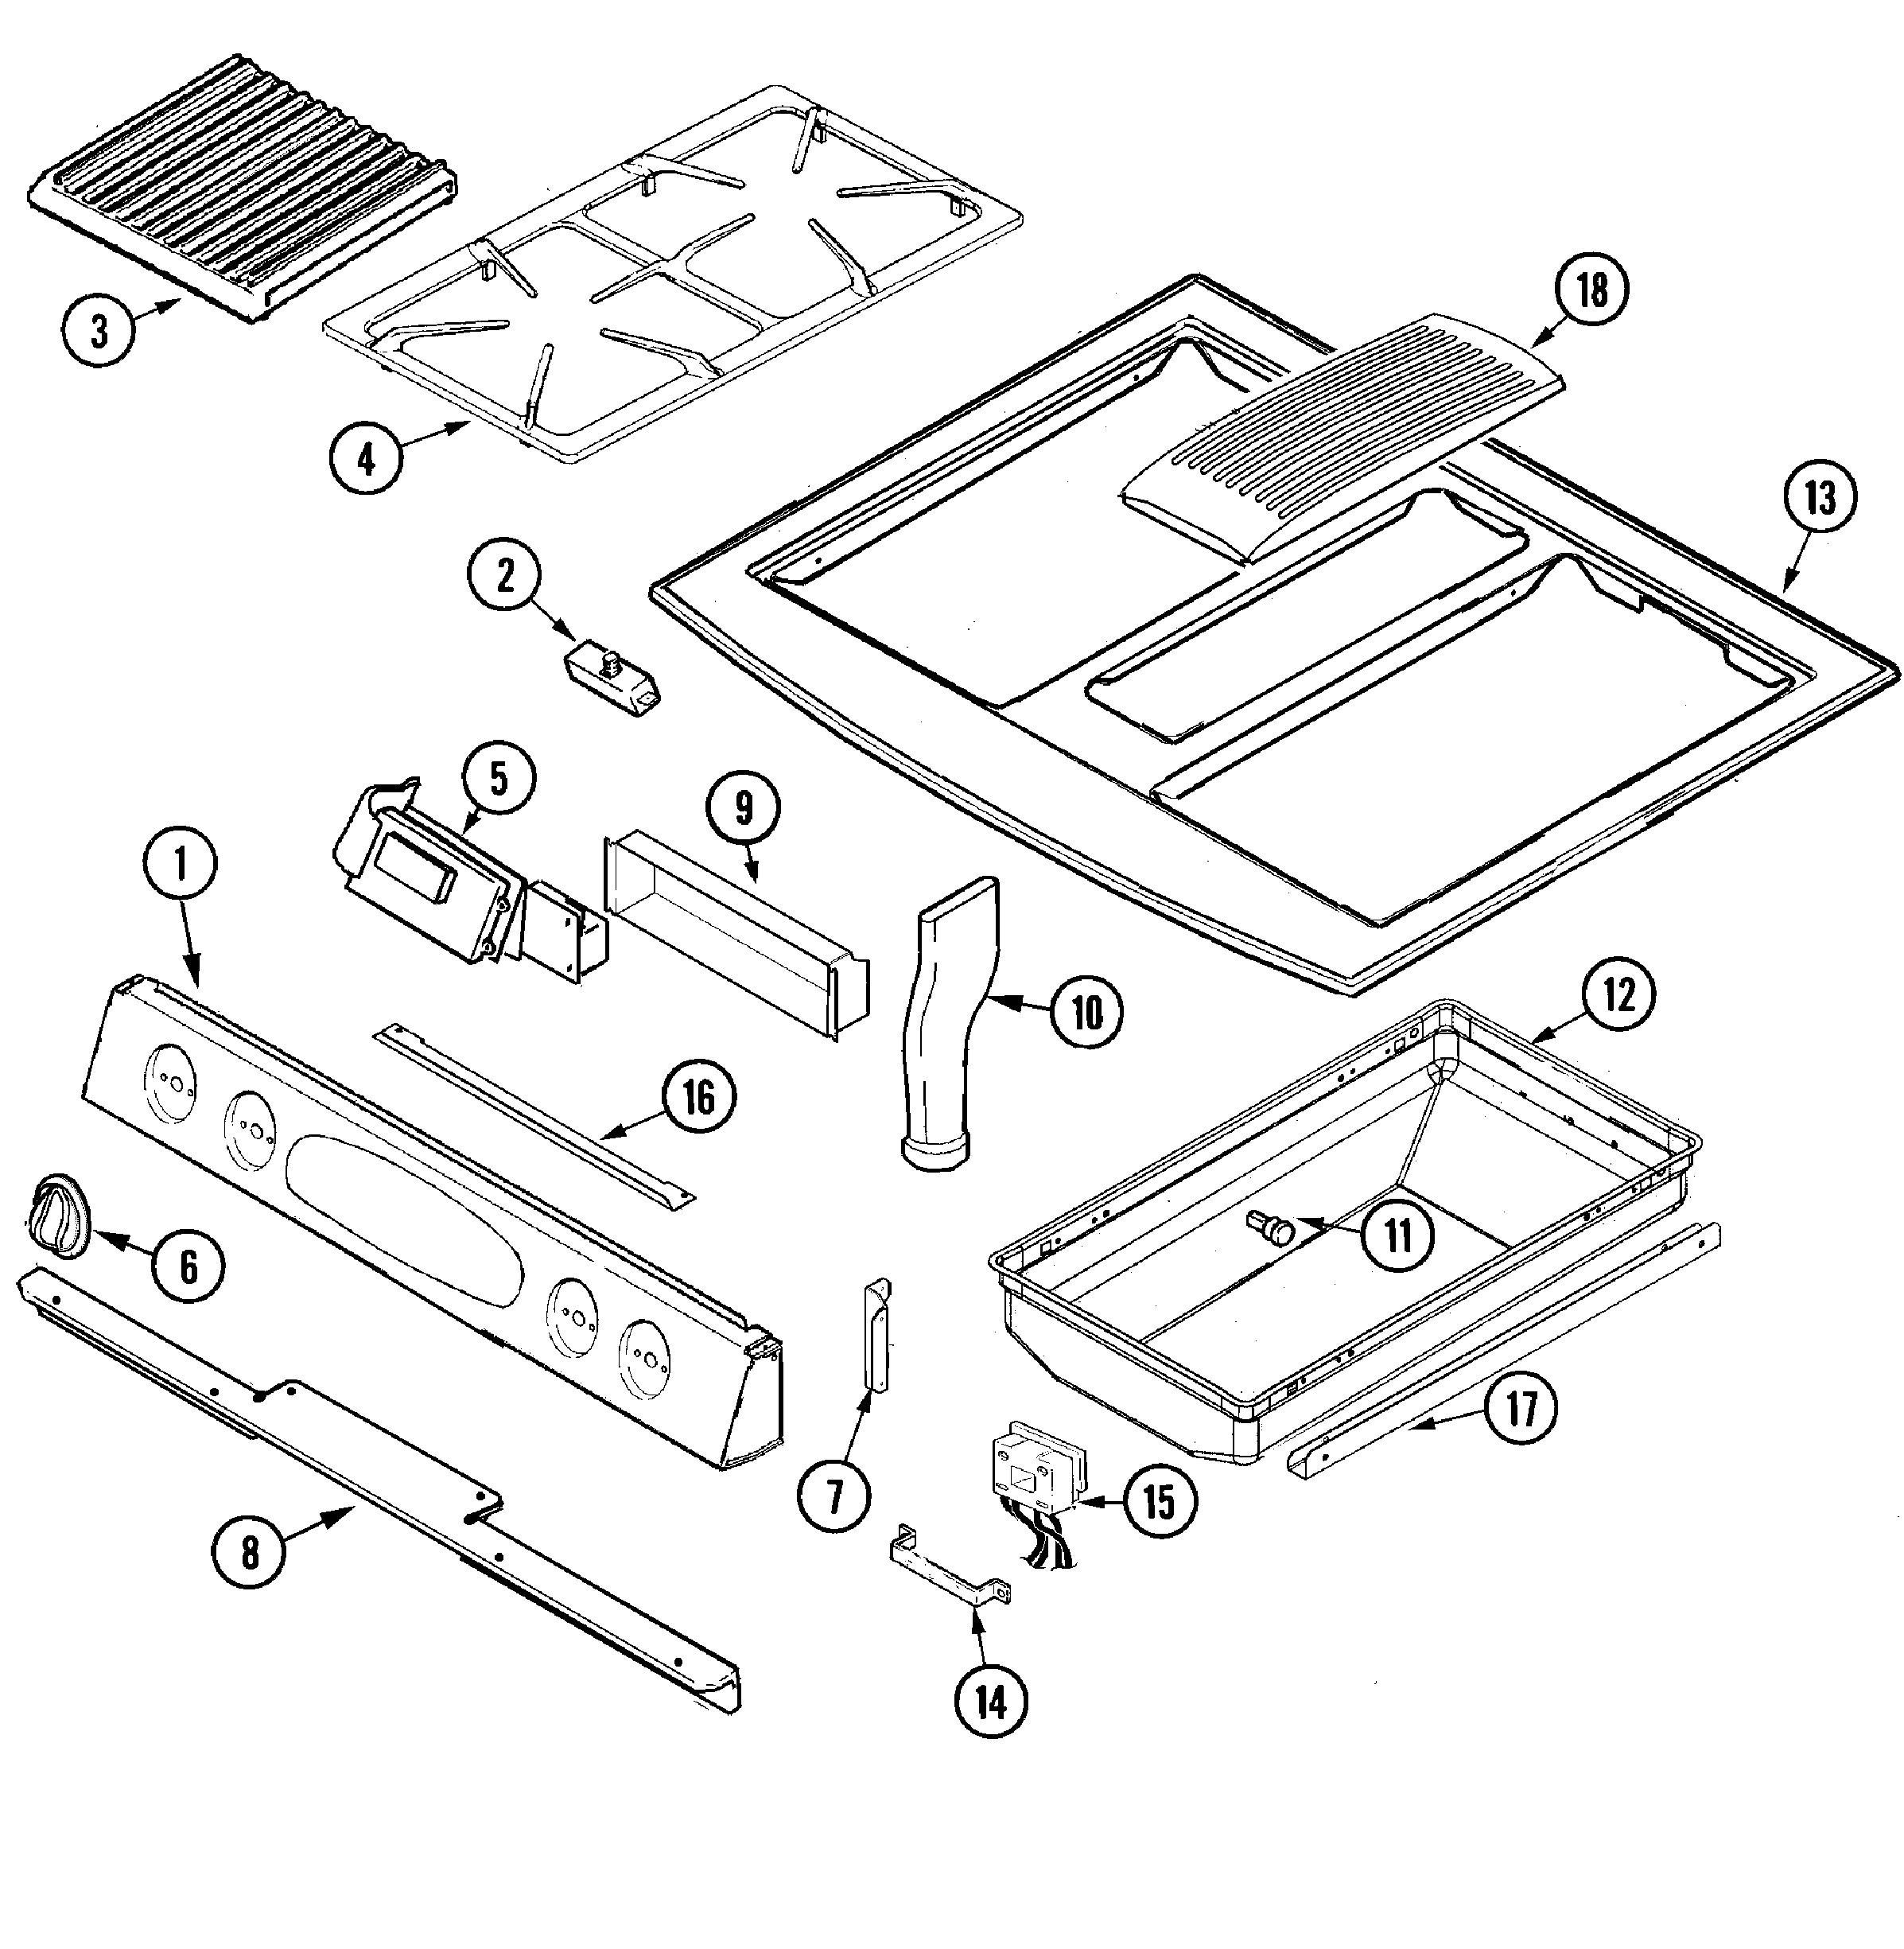 jenn air refrigerator parts diagram electrical wiring explained model jds9860aab 31 images